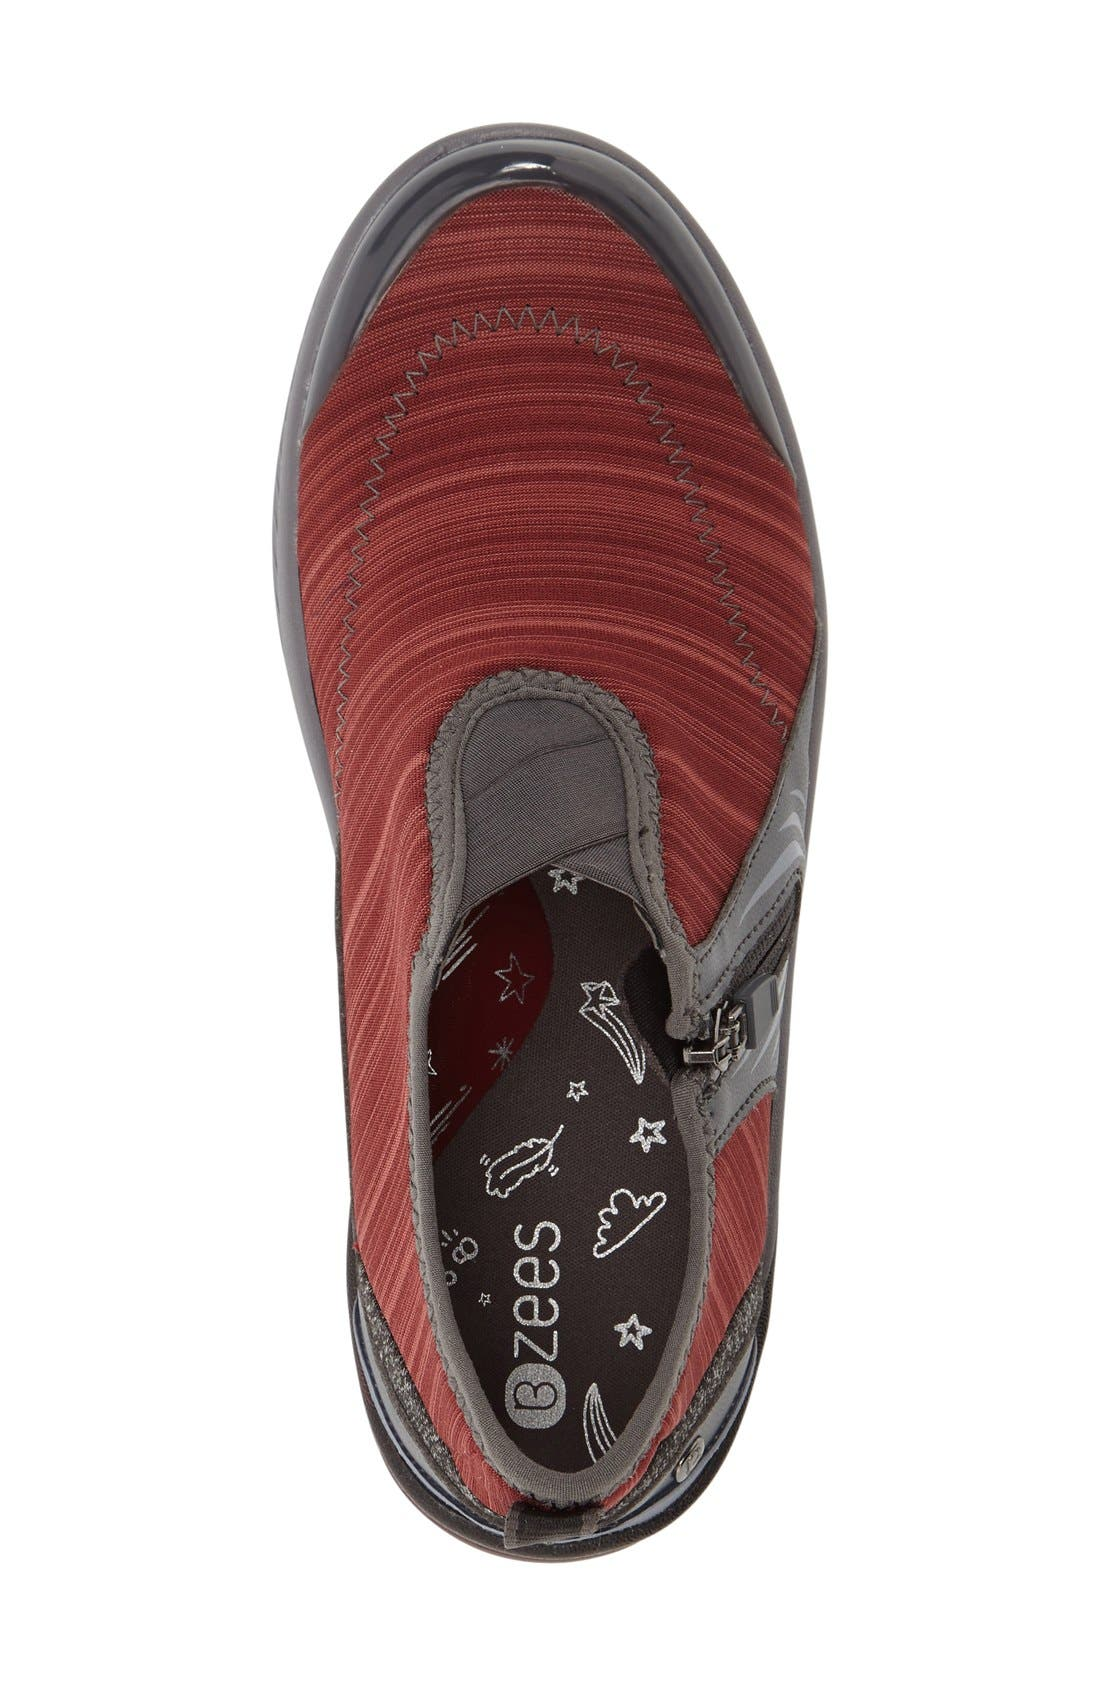 Nova Midi Sneaker,                             Alternate thumbnail 3, color,                             DARK RED LINEAR HEATHER FABRIC